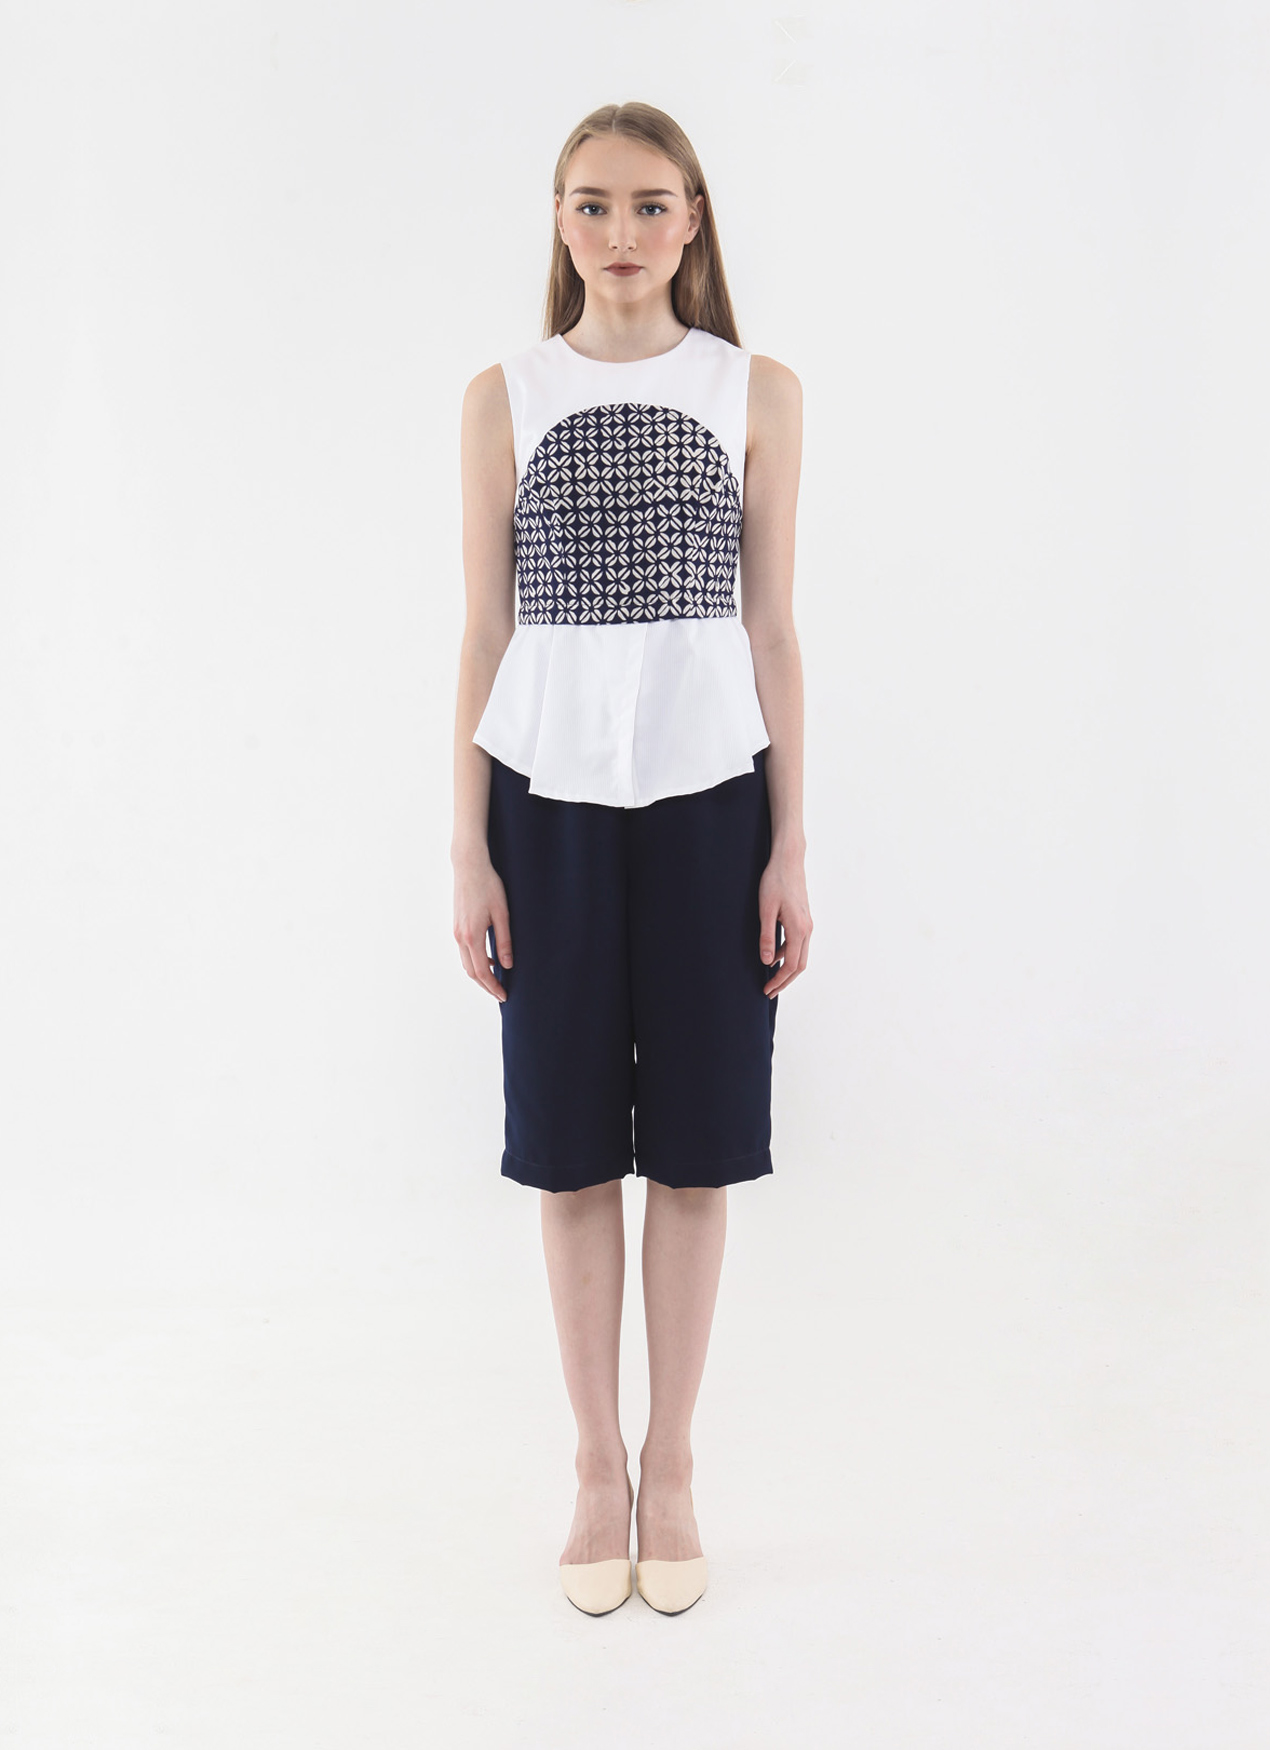 1cec35e8aee5 Buy Original Anynome Navy Blue Ivy Culotte Jumpsuit at Indonesia ...